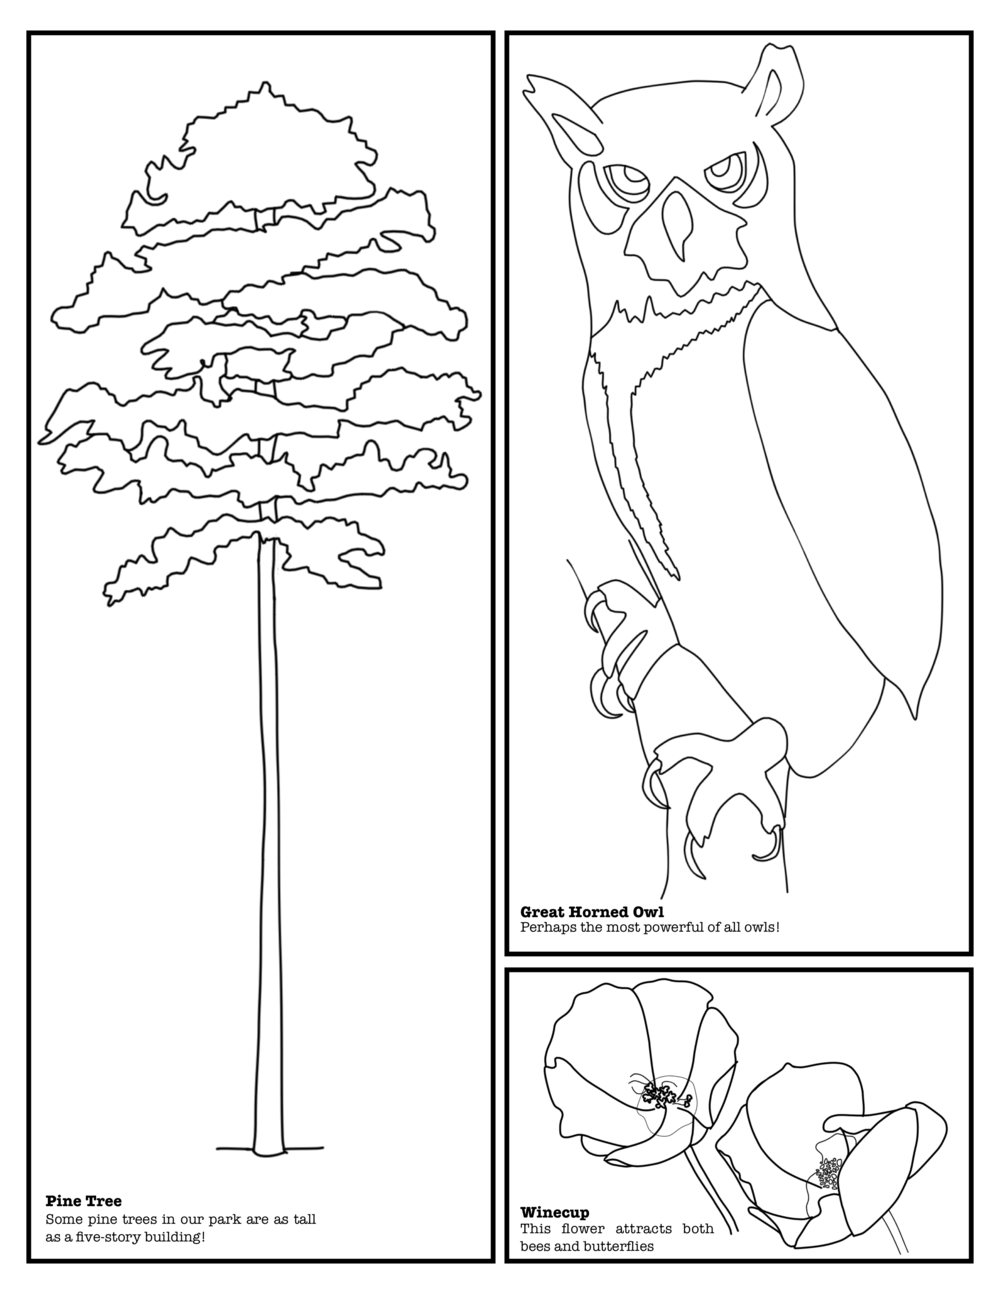 Coloring Book Layout 2.png